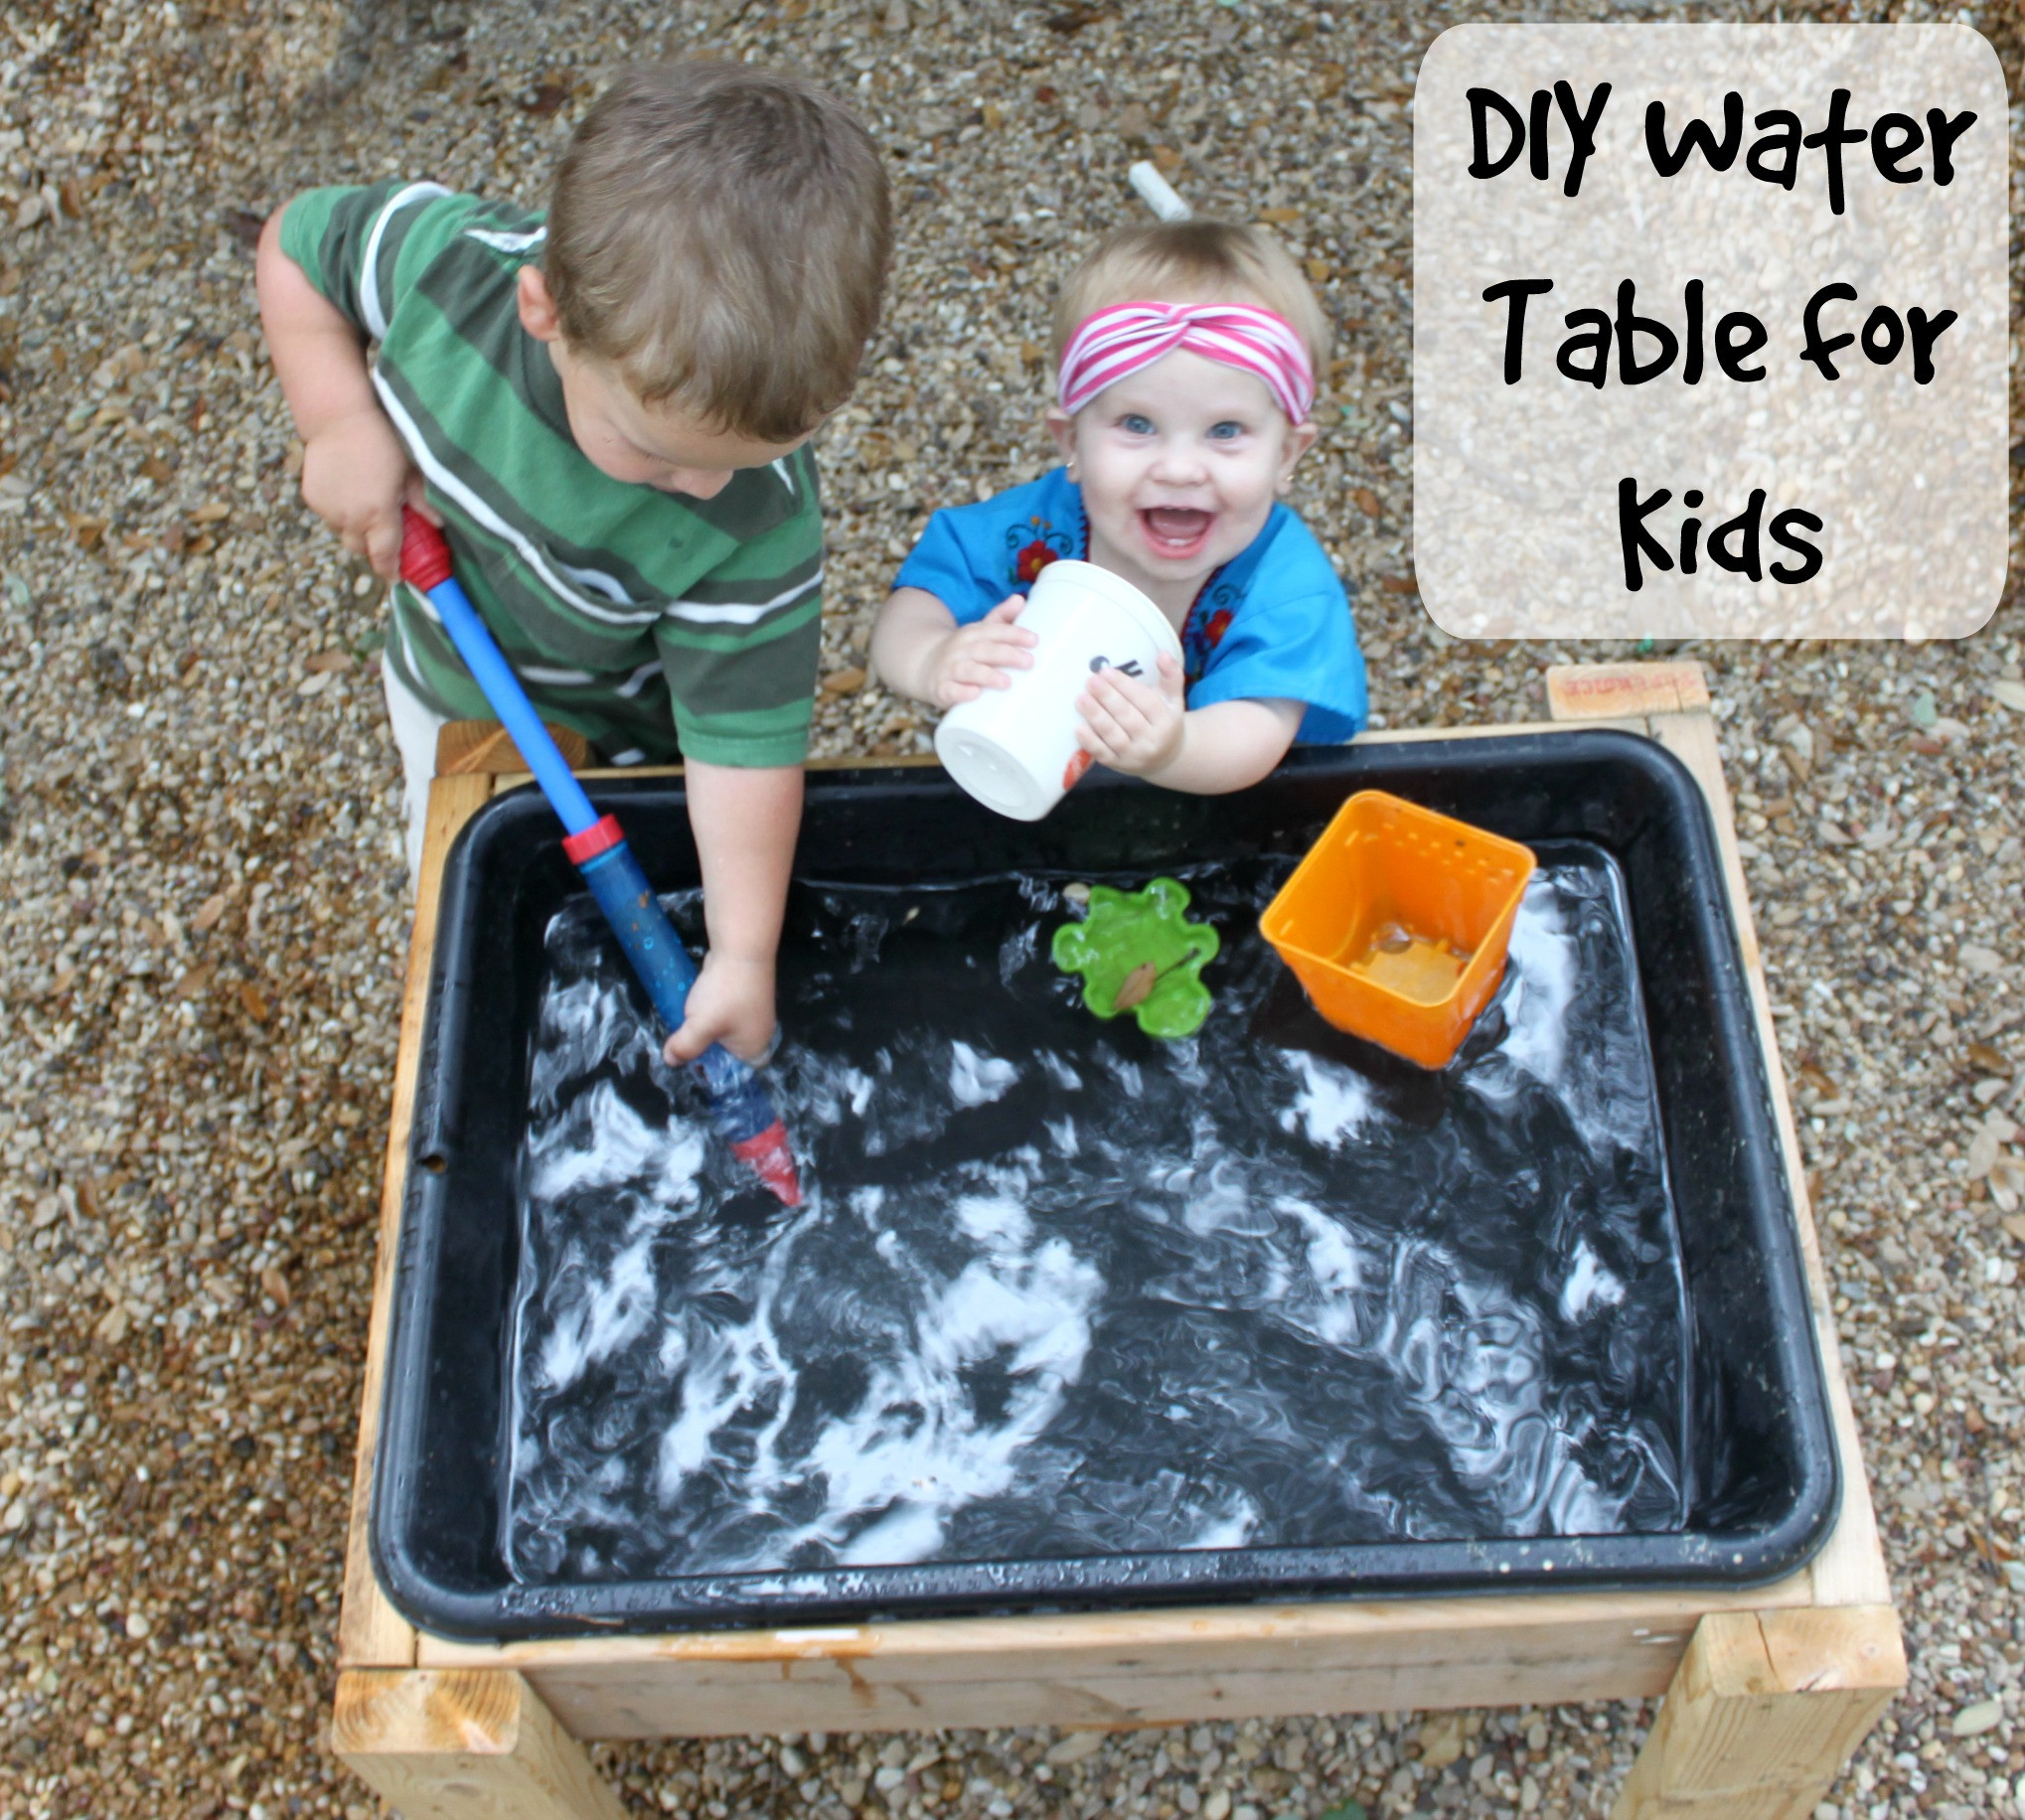 Best ideas about DIY Water Table For Kids . Save or Pin Make a DIY Water Table for Less than $15 Bare Feet on Now.